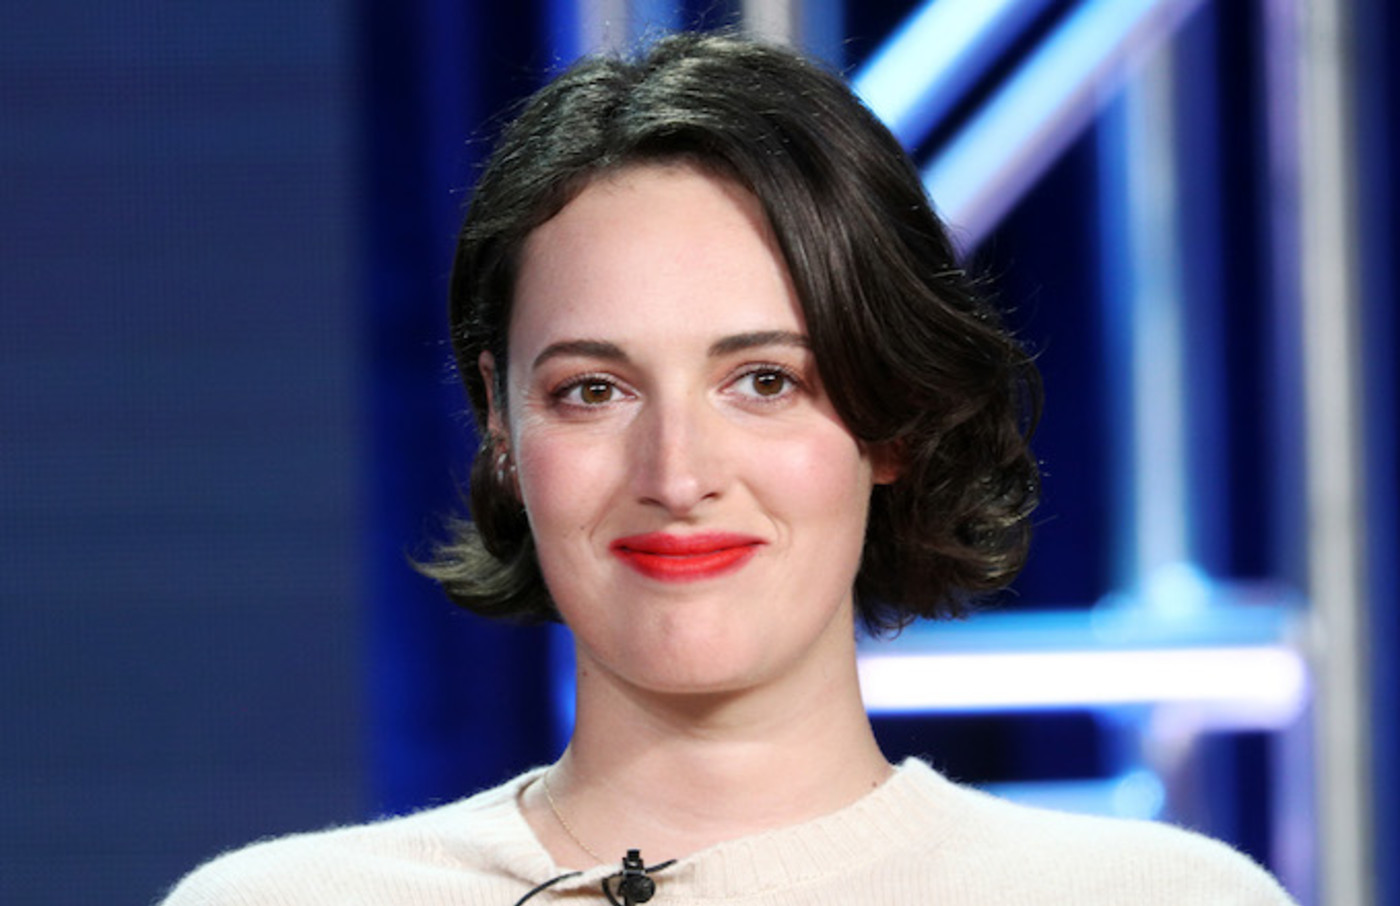 Phoebe Waller-Bridge speaks during the Amazon Prime Video Visionary Voices segment.